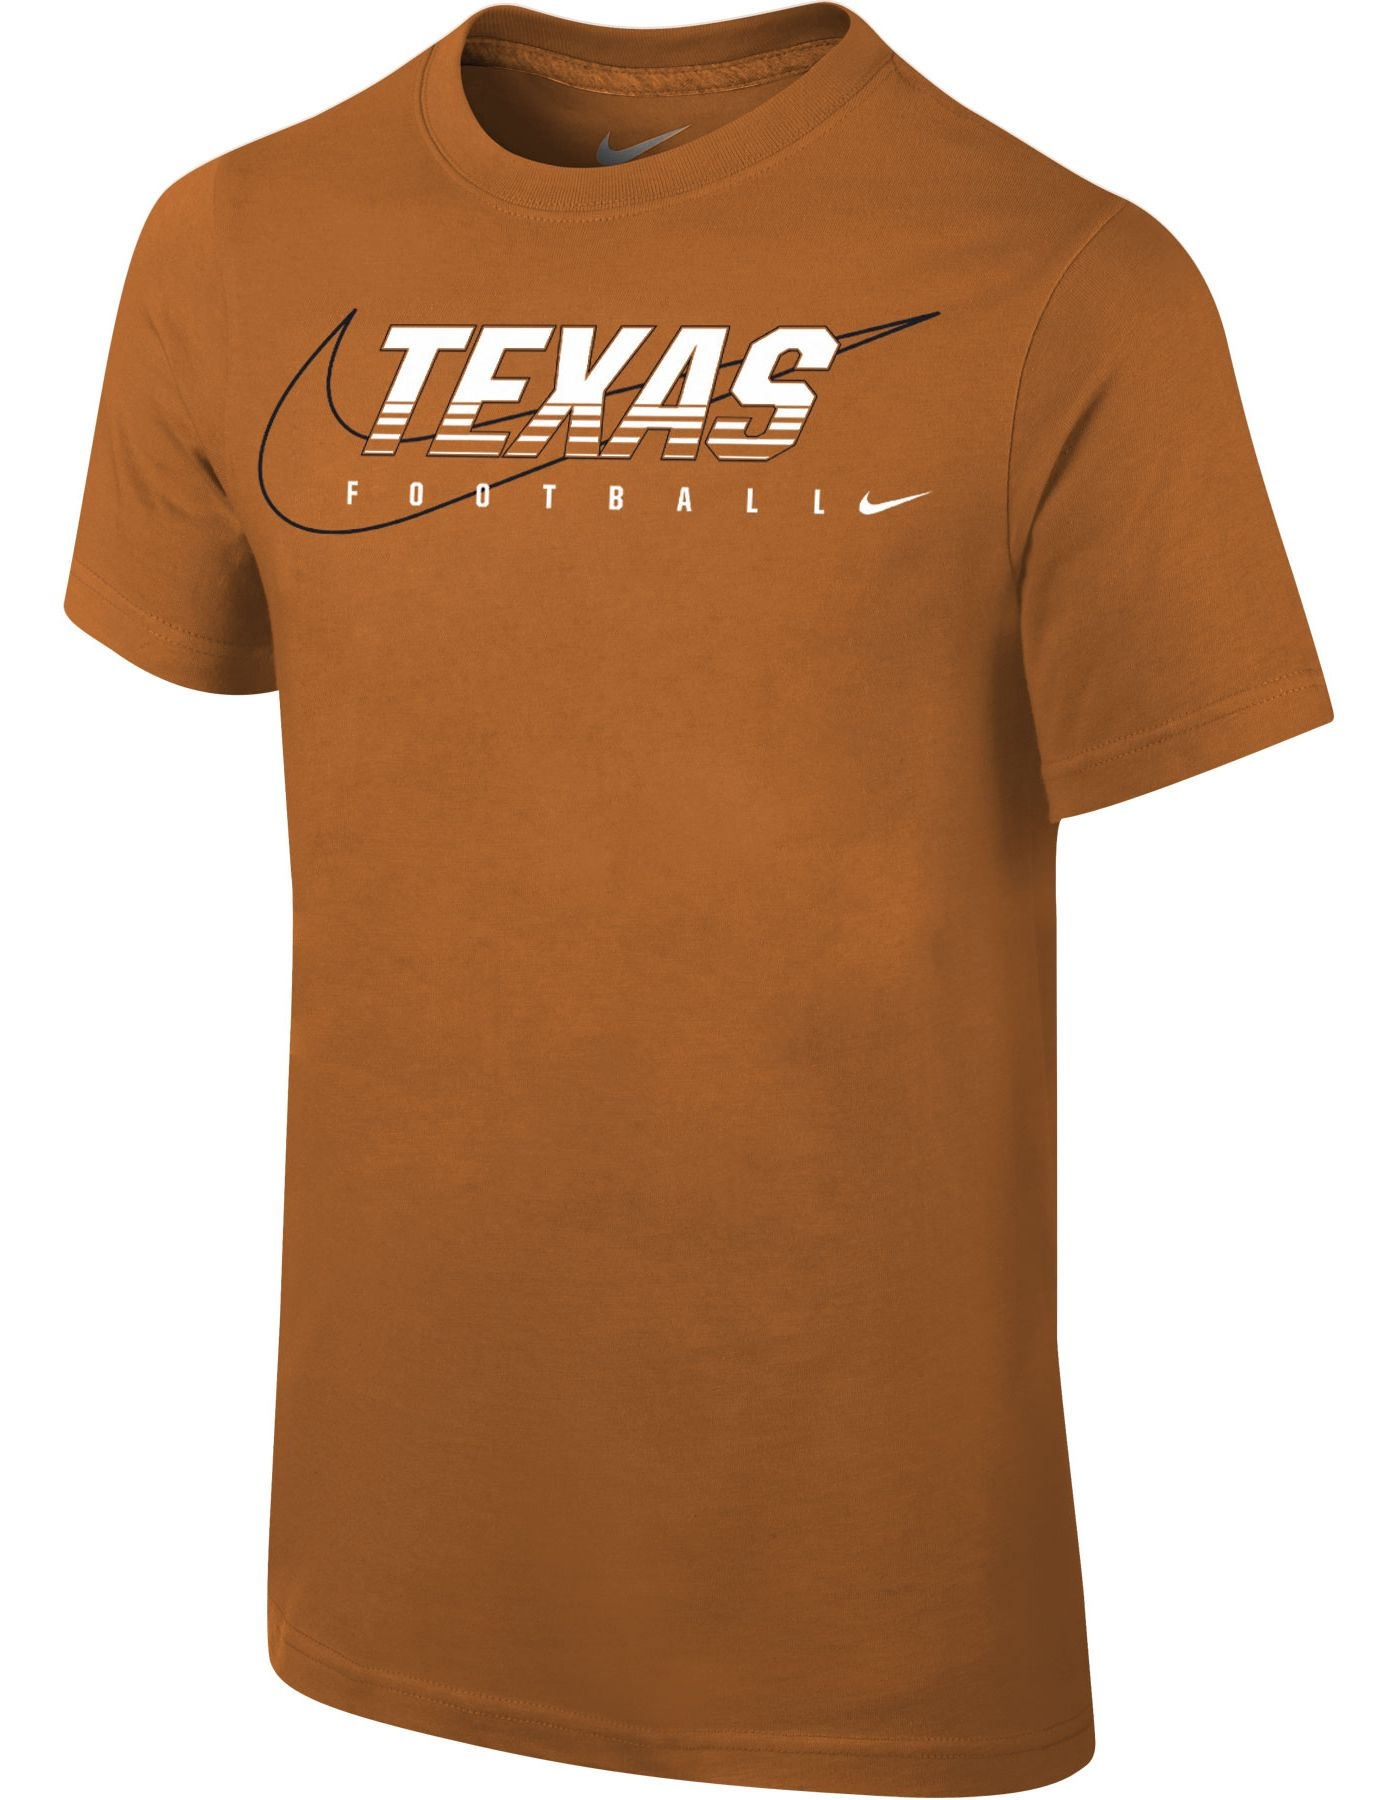 Nike Youth Texas Longhorns Burnt Orange Football Dri-FIT Cotton Facility T-Shirt